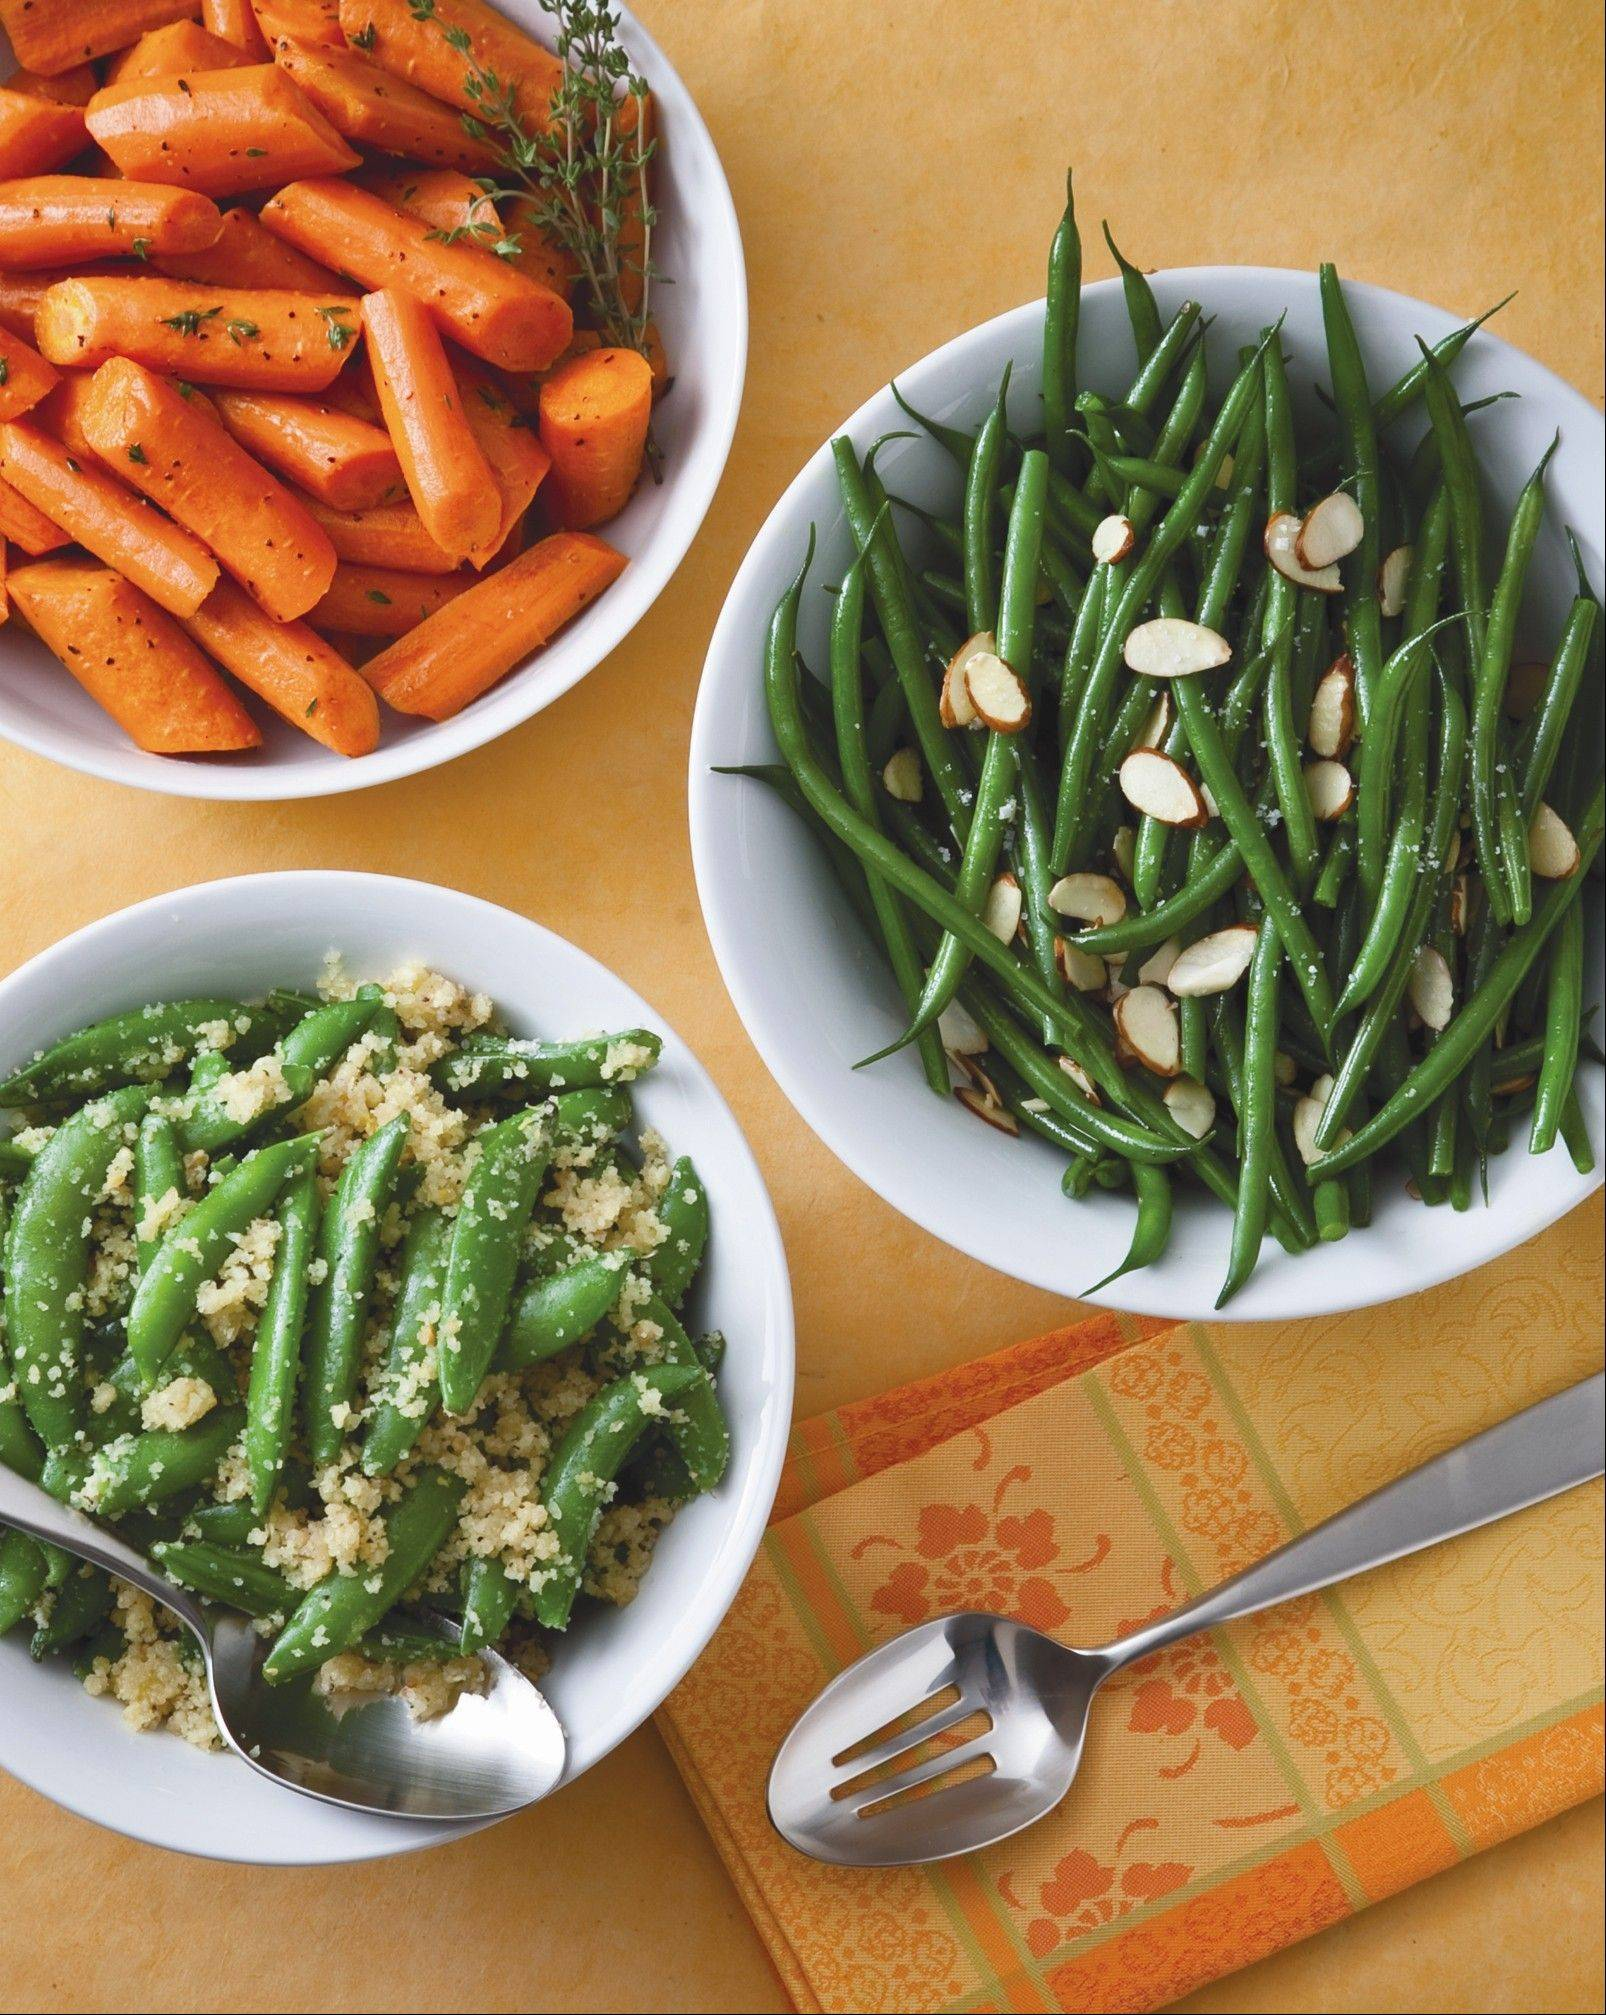 Side dishes of carrots, green beans and sugar snap peas round out quick, simple family meals.